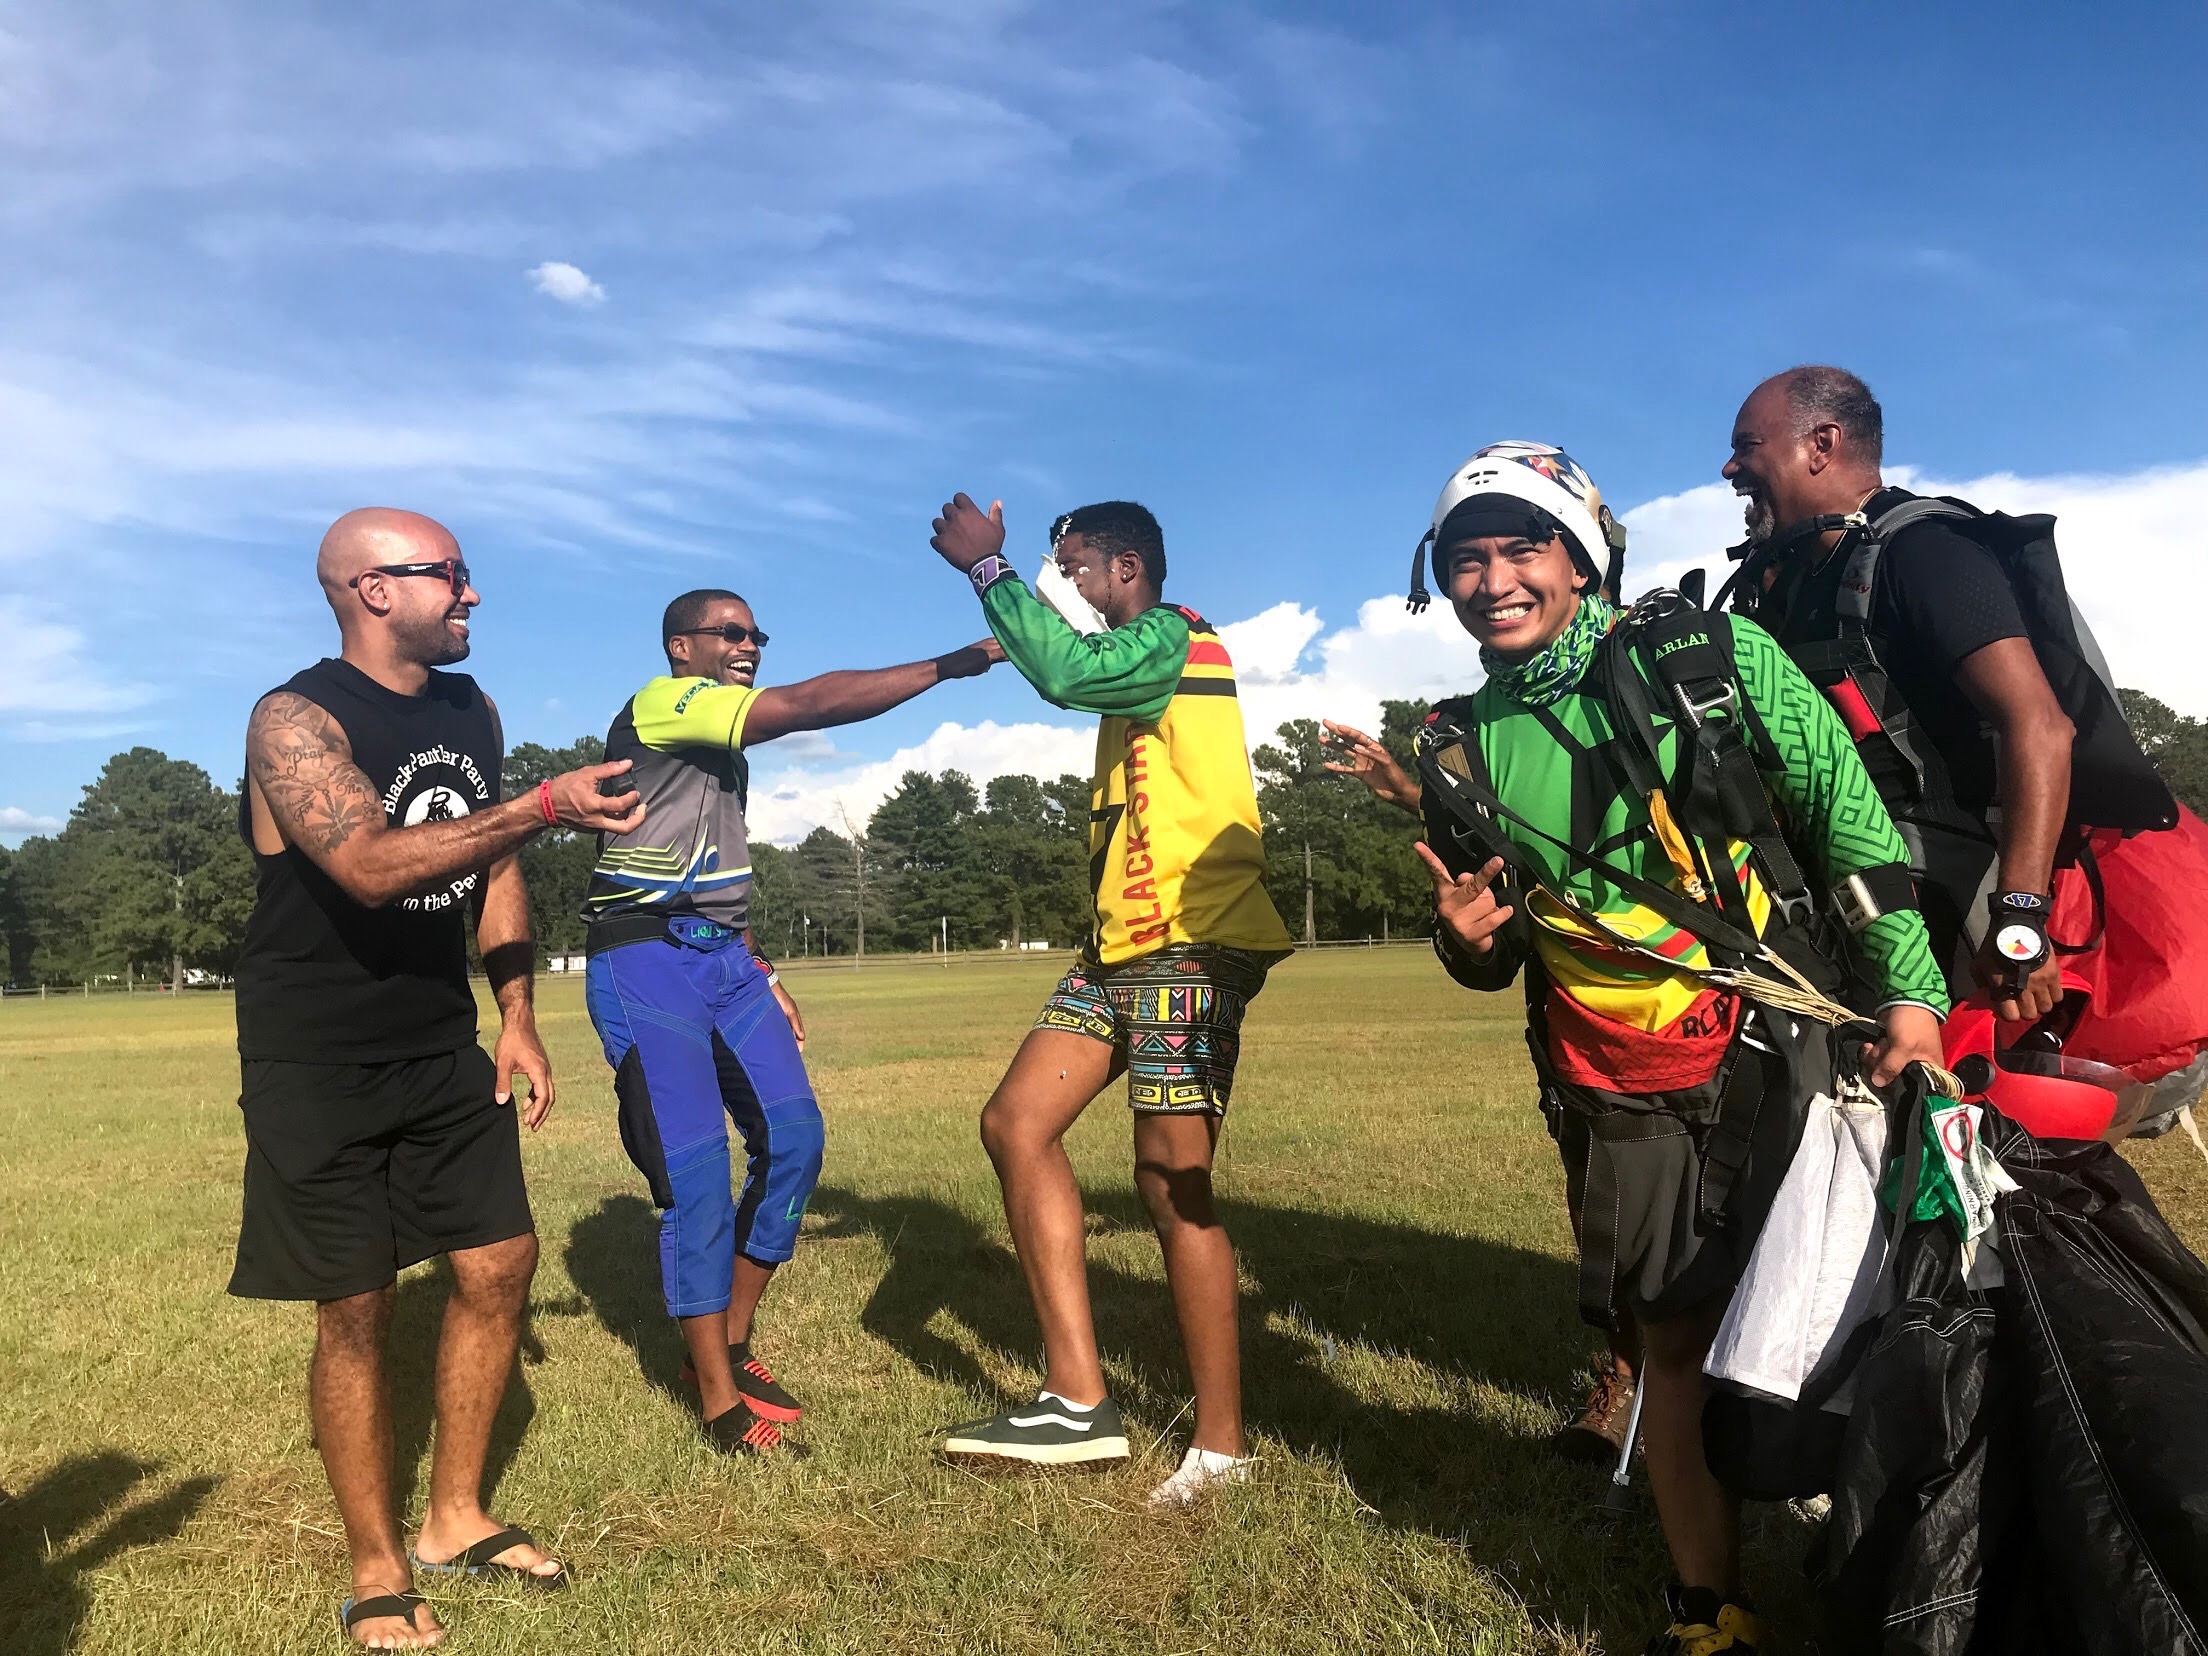 Nick (2nd from left) pies a jumper; according to skydiving tradition, jumpers are pied on the occasion of their 100th, 1,000th and 10,000th skydive!  Photo courtesy of Danielle Williams